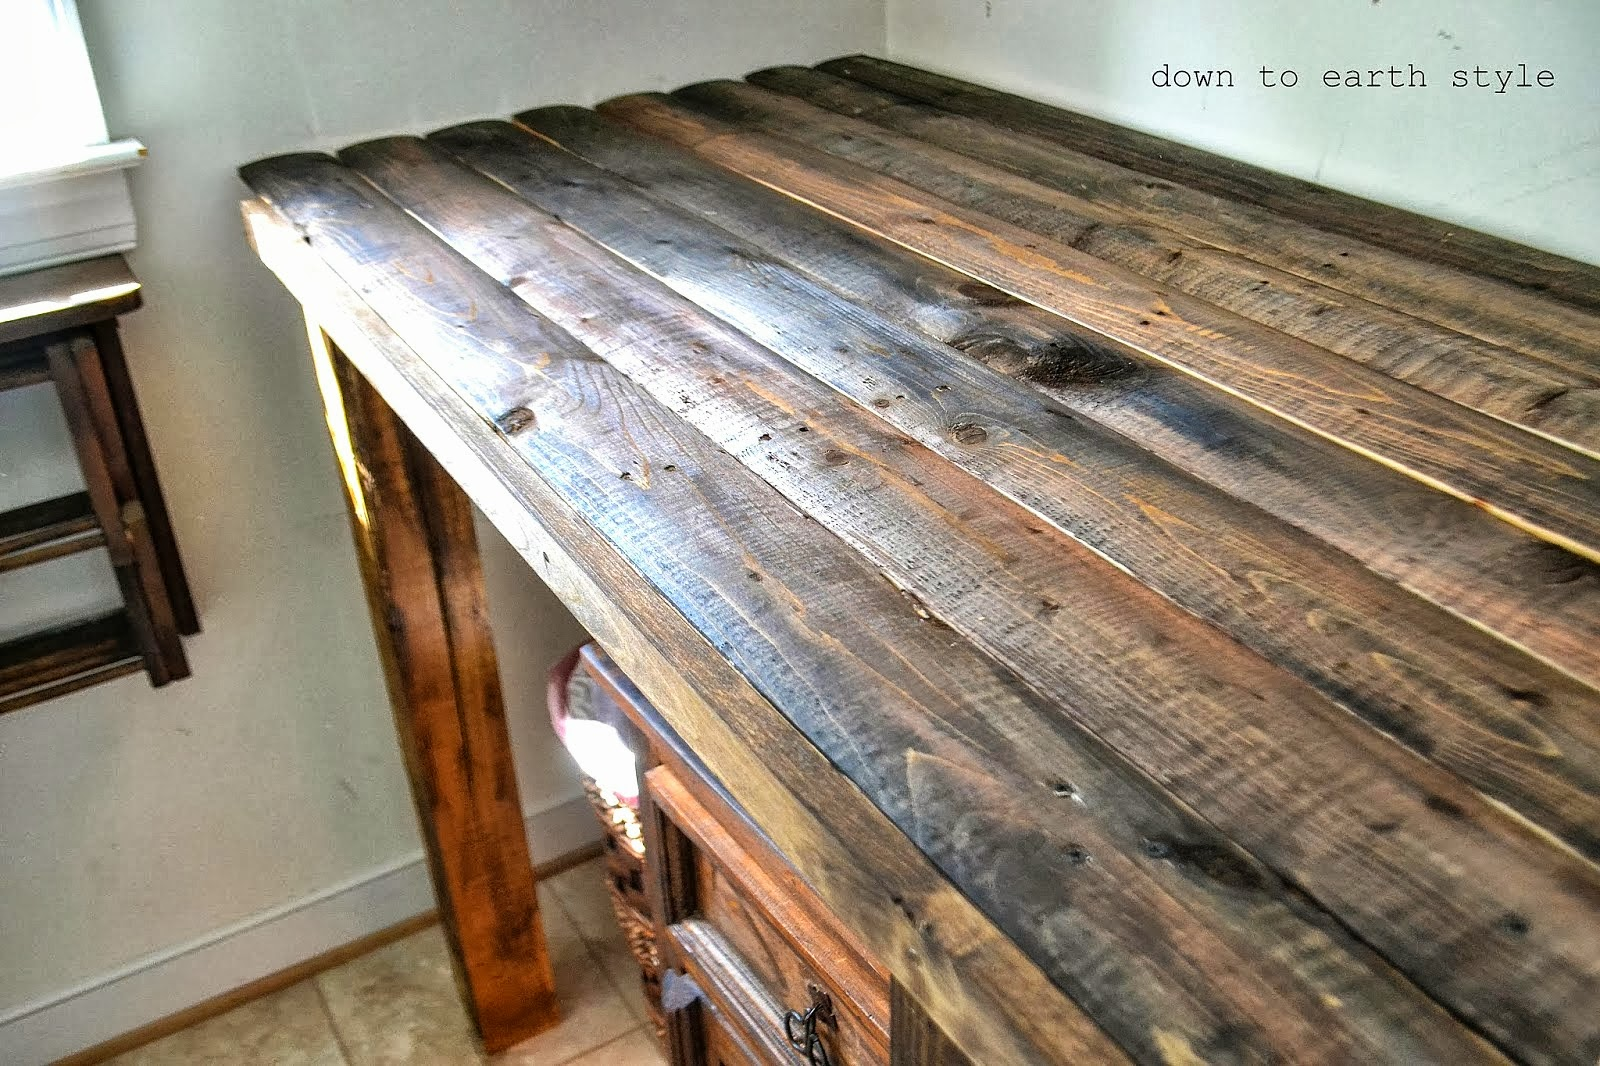 Reclaimed wood laundry room folding table by Down to Earth Style ...